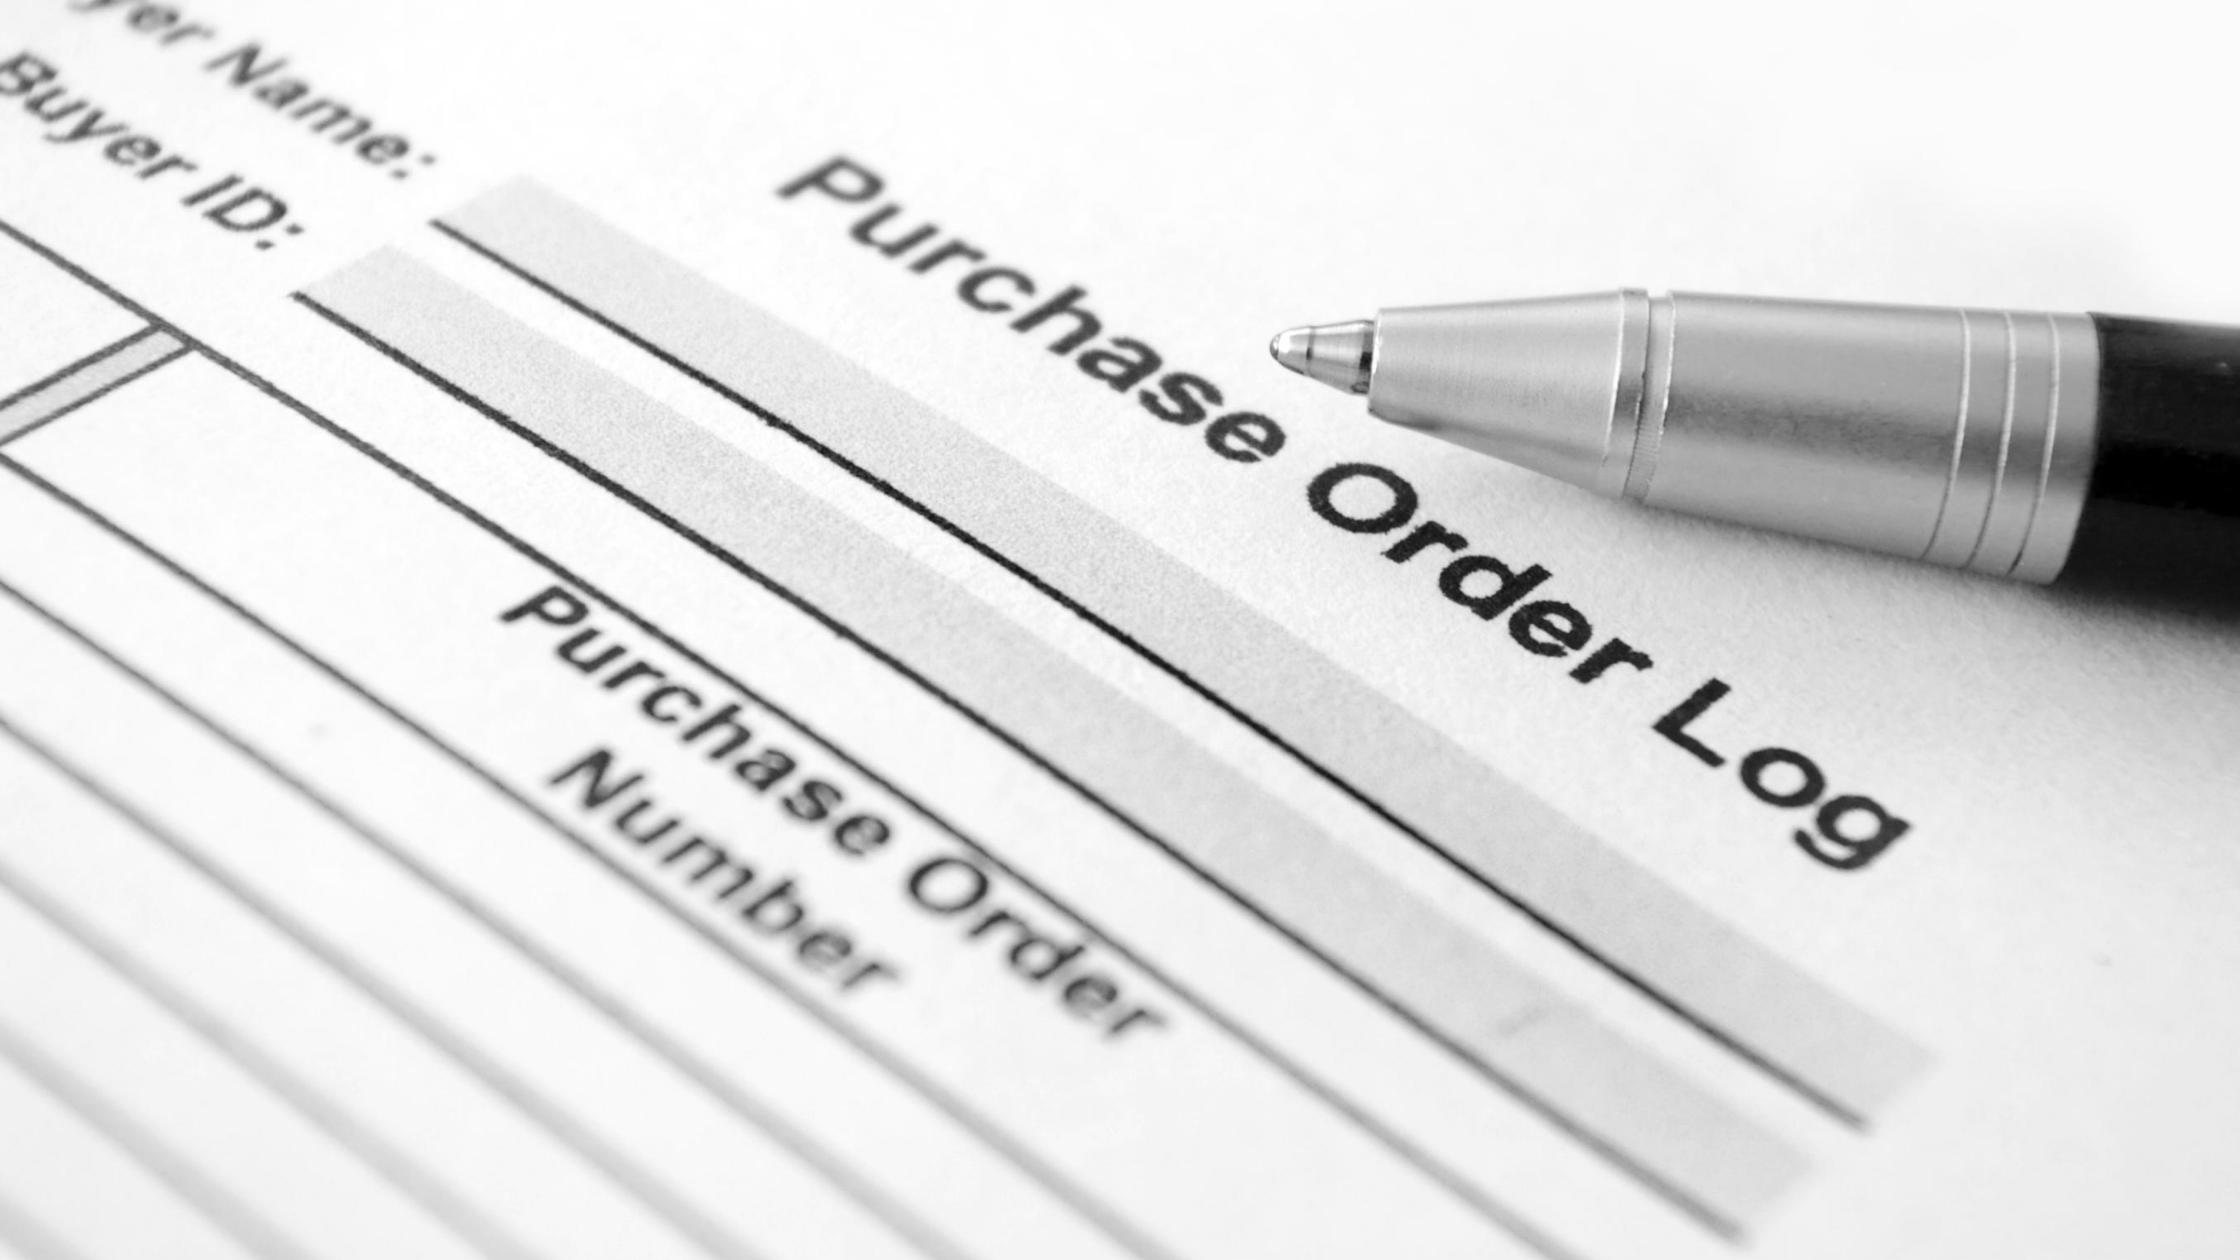 Purchase Order Systems